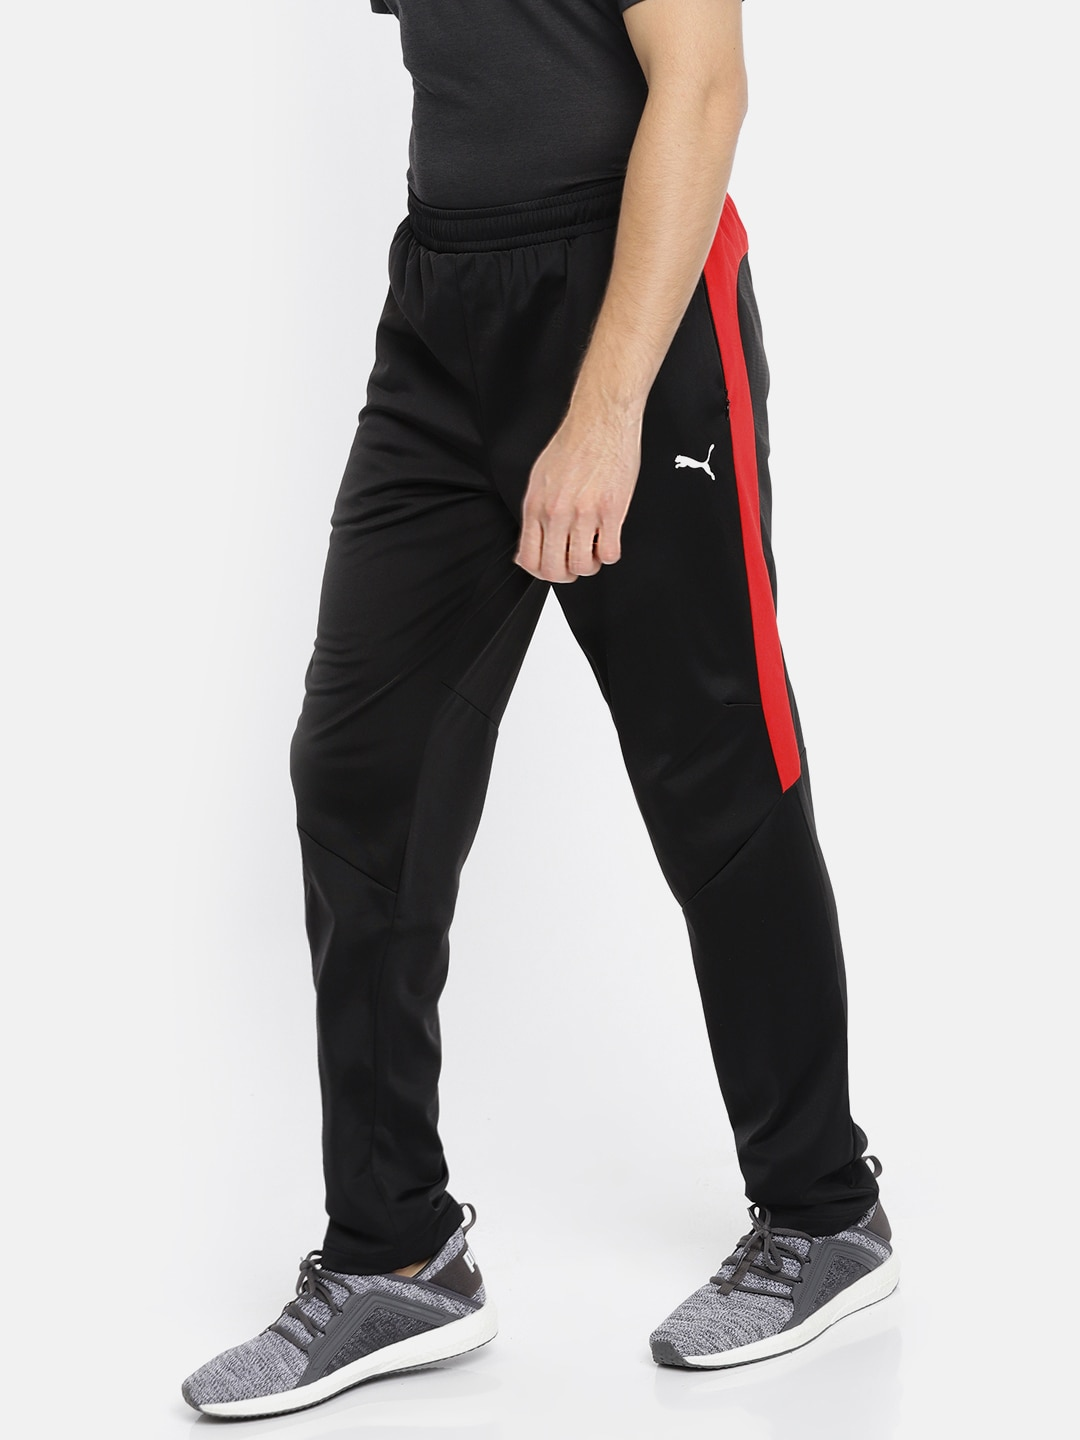 a3f0eed8a99a Top Brands Track Pants - Buy Top Brands Track Pants online in India